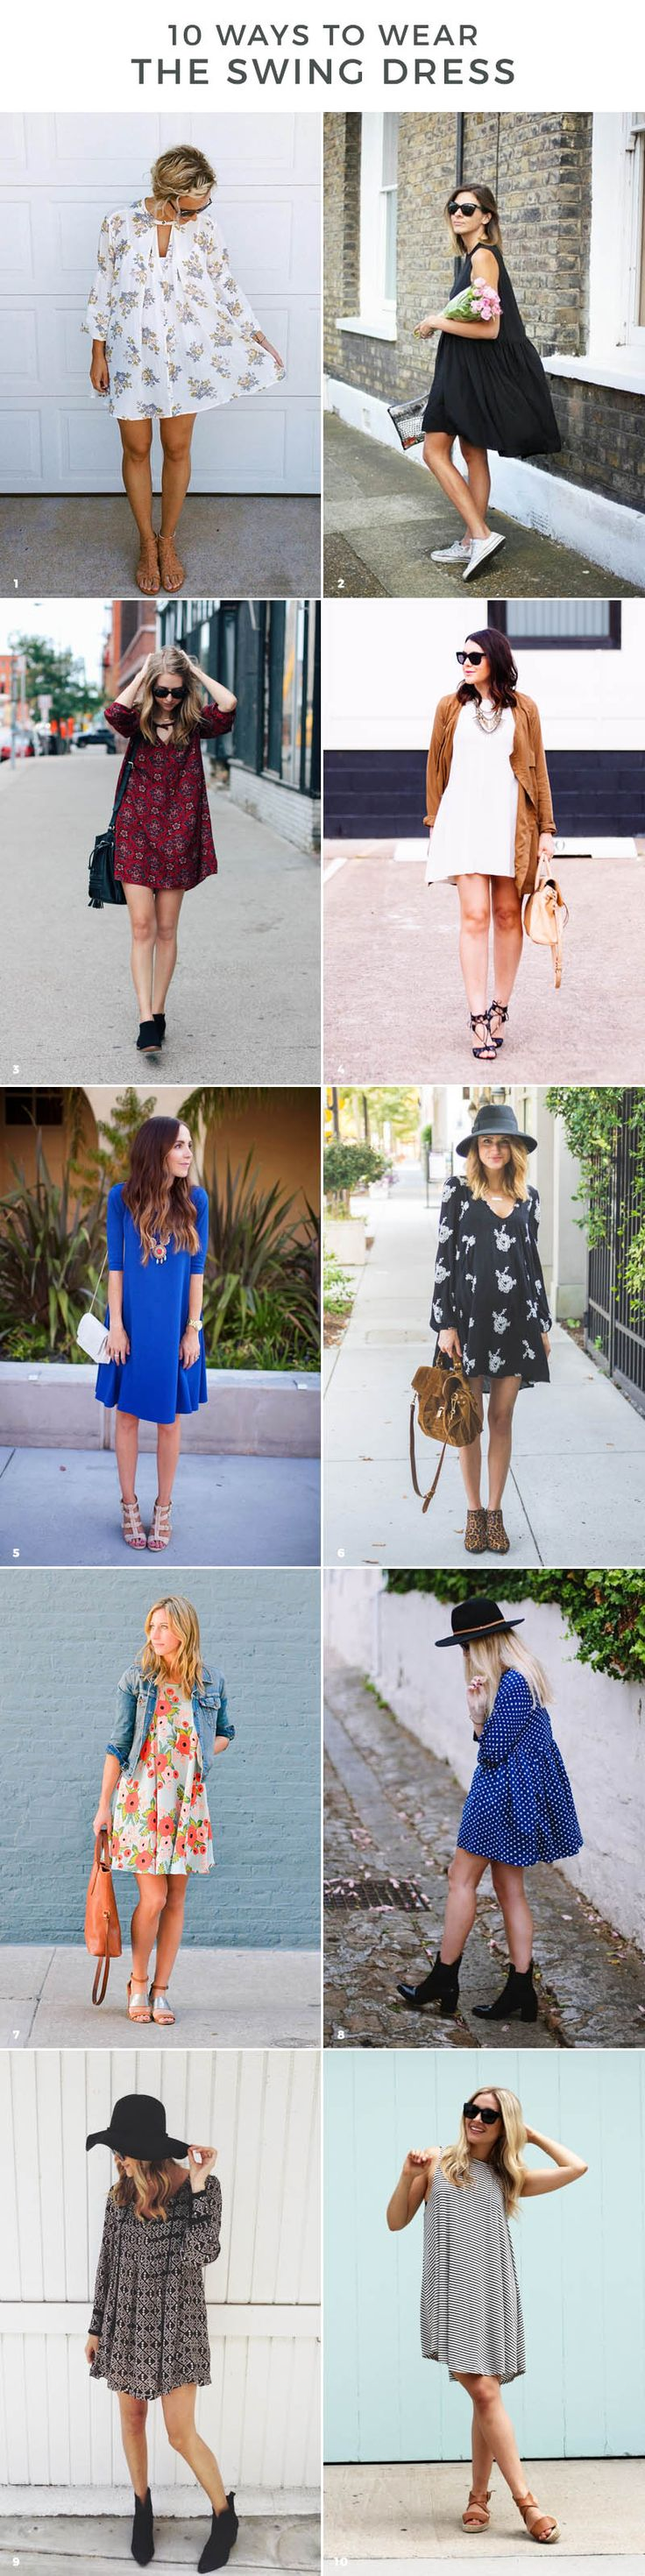 10 WAYS TO WEAR THE SWING DRESS THIS SPRING Advice from a Twenty Something waysify